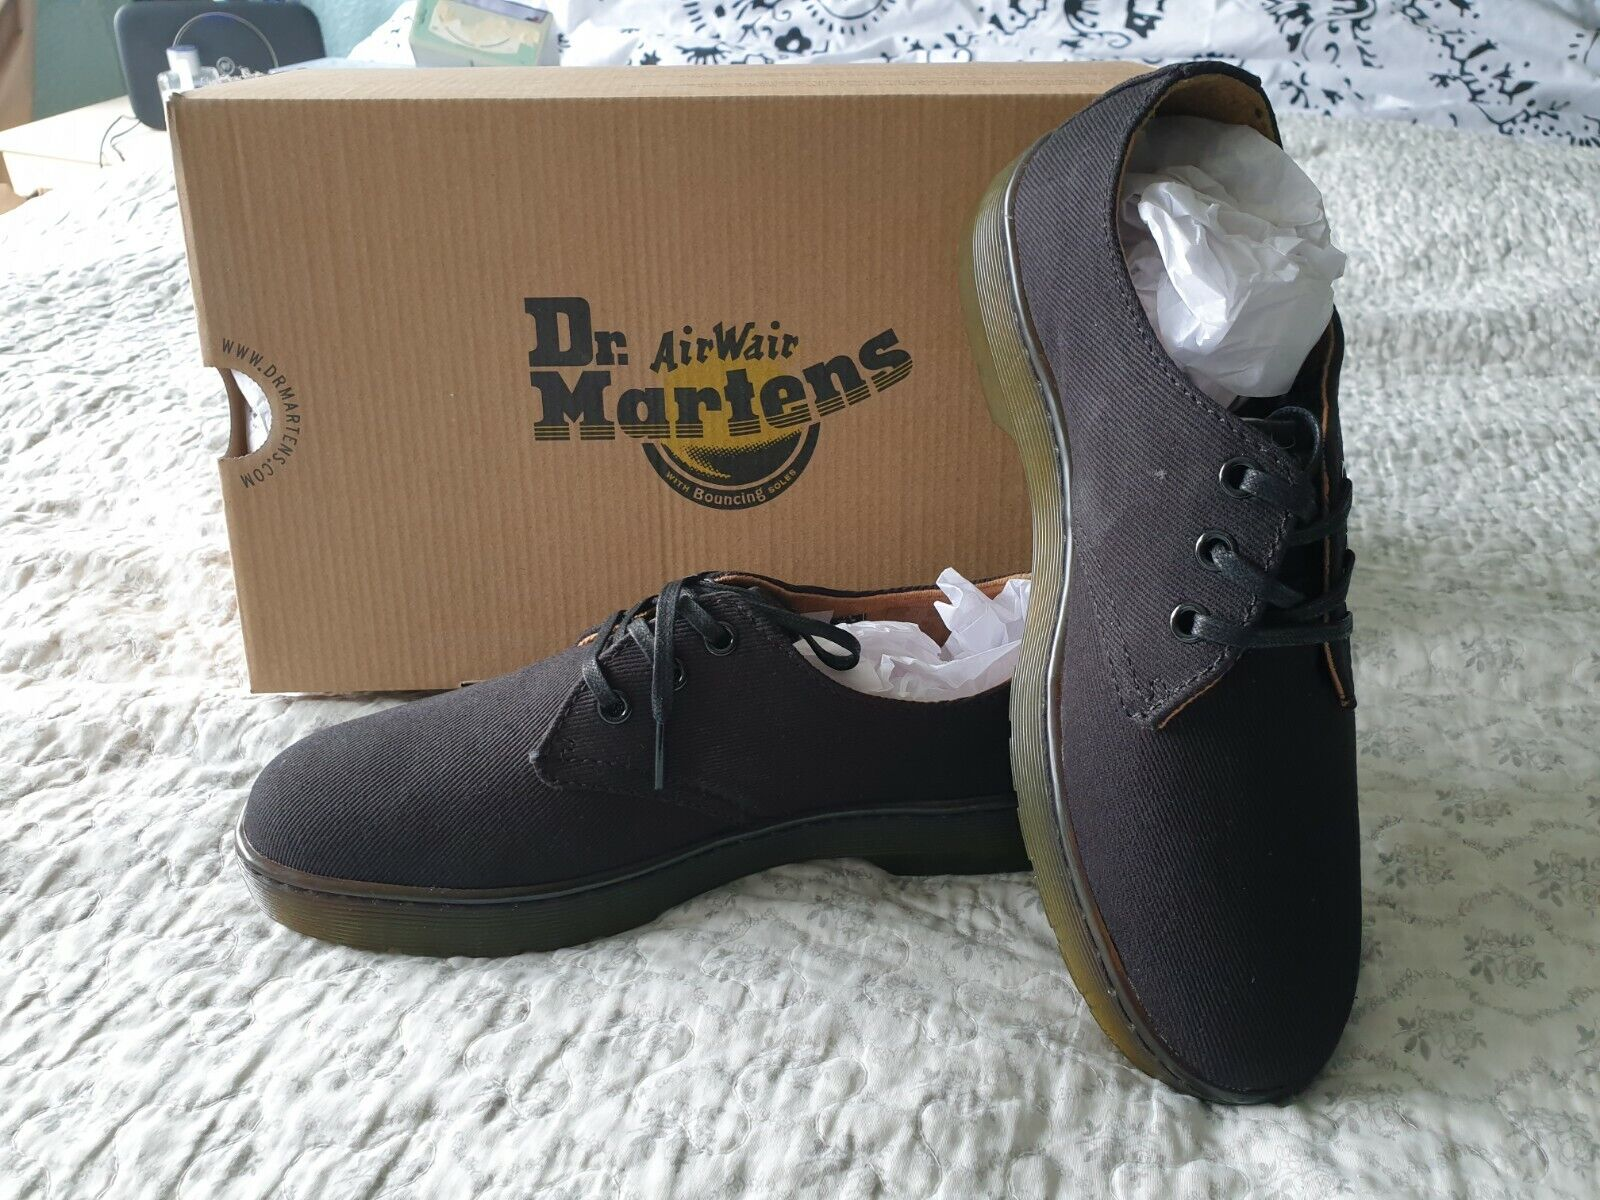 Dr martens Black Delray shoes size 6.5 brand new